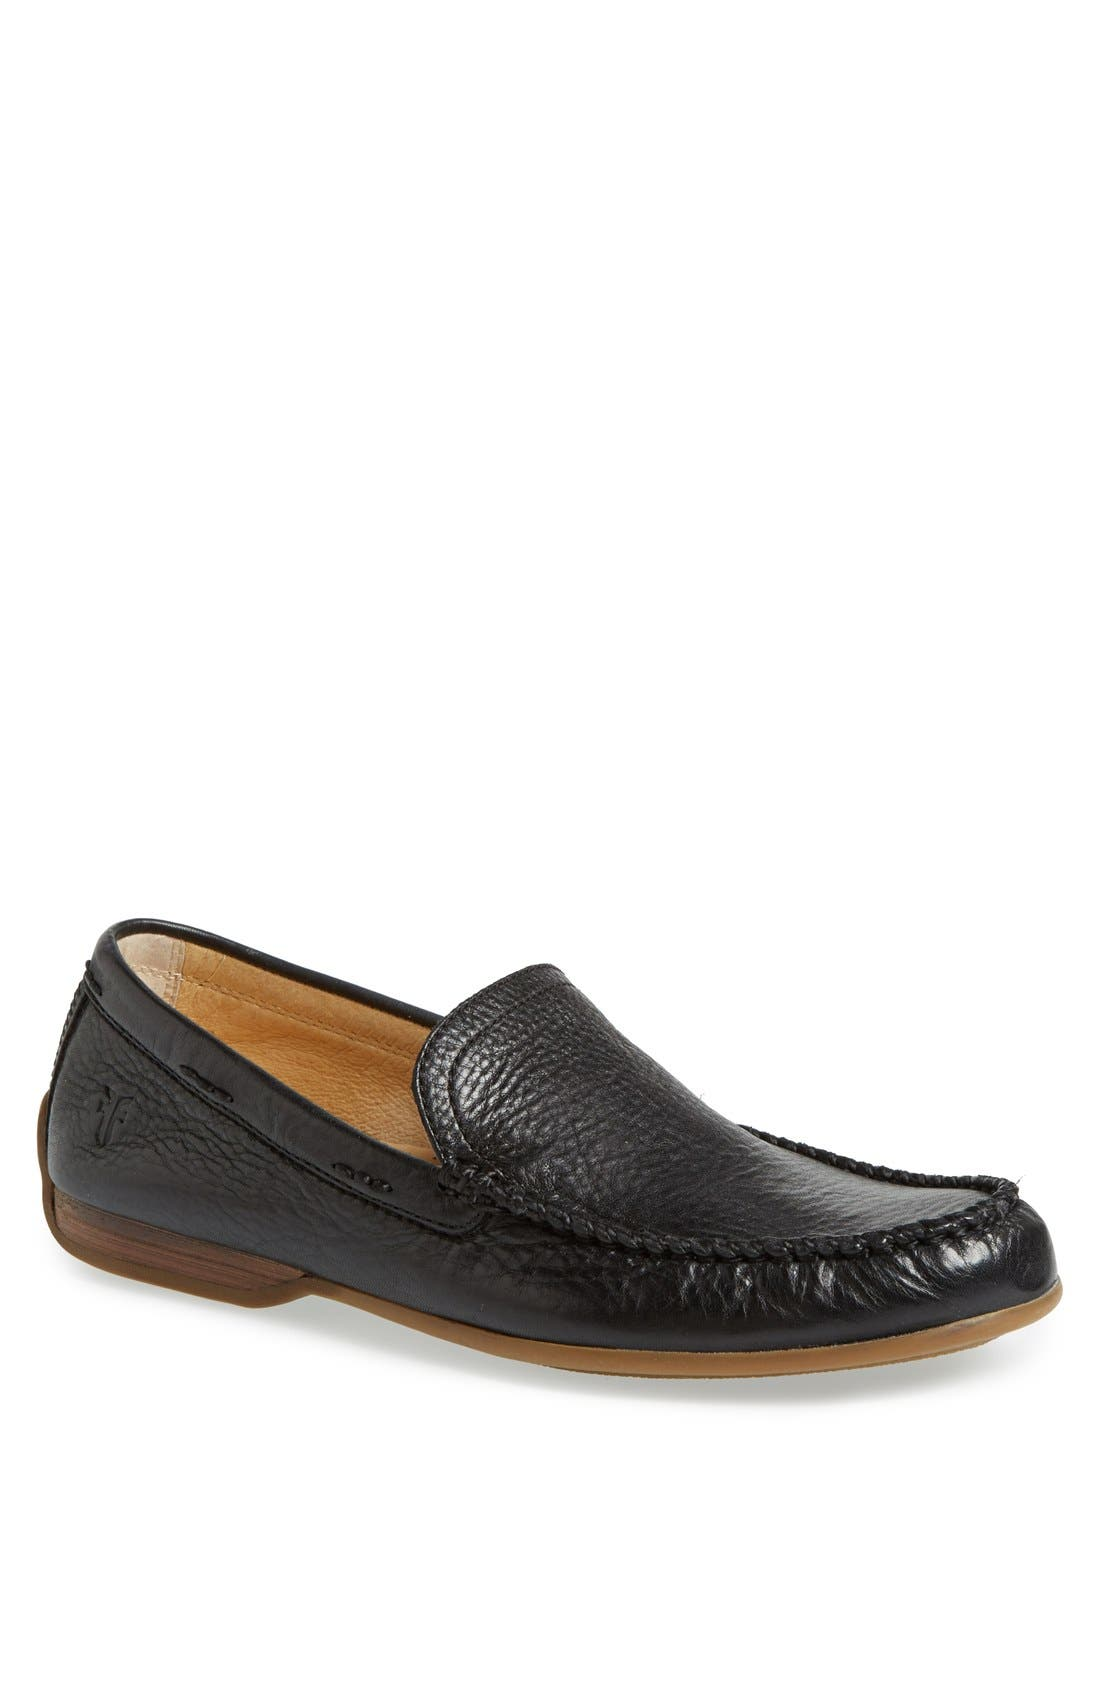 Main Image - Frye 'Lewis' Venetian Loafer (Men)